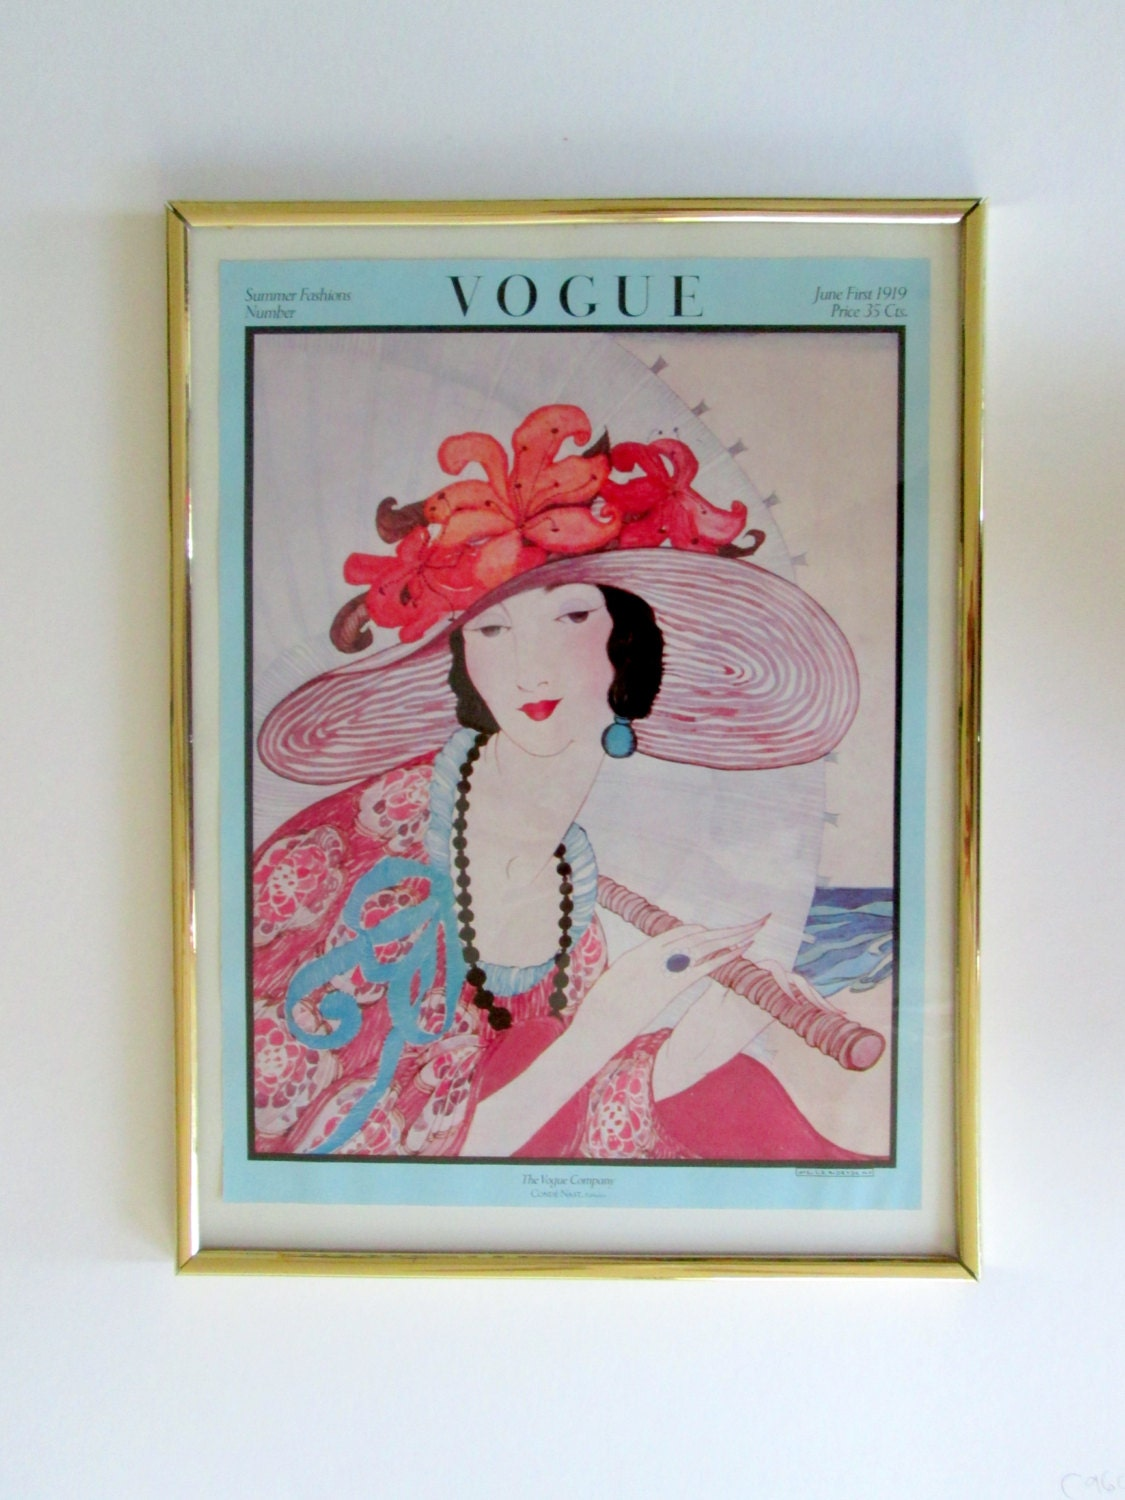 Vogue 1919 Magazine Cover Poster Framed By By Lyricalvintage